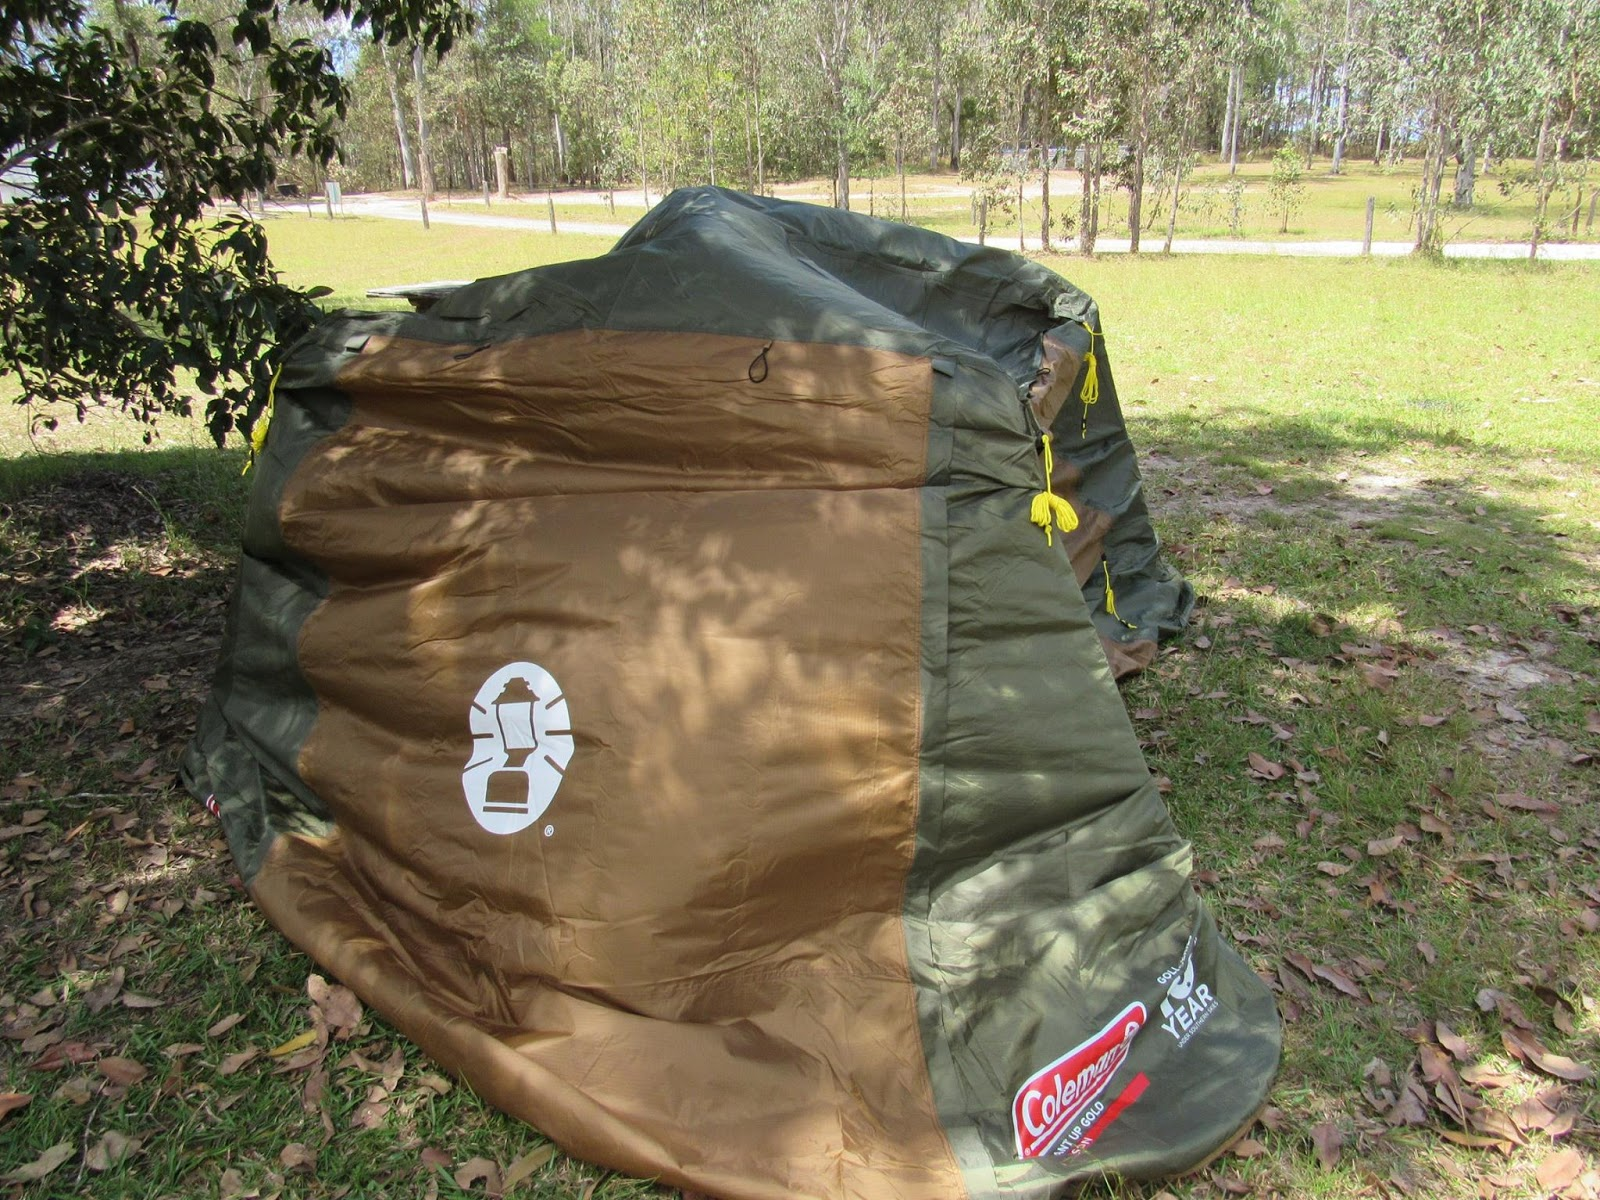 Lowering the framing on the Coleman instant up 4 gold tent makes it easier to get the fly over on your own. & Tentworld: Coleman Gold Series Instant Up Tent Maiden Voyage Review